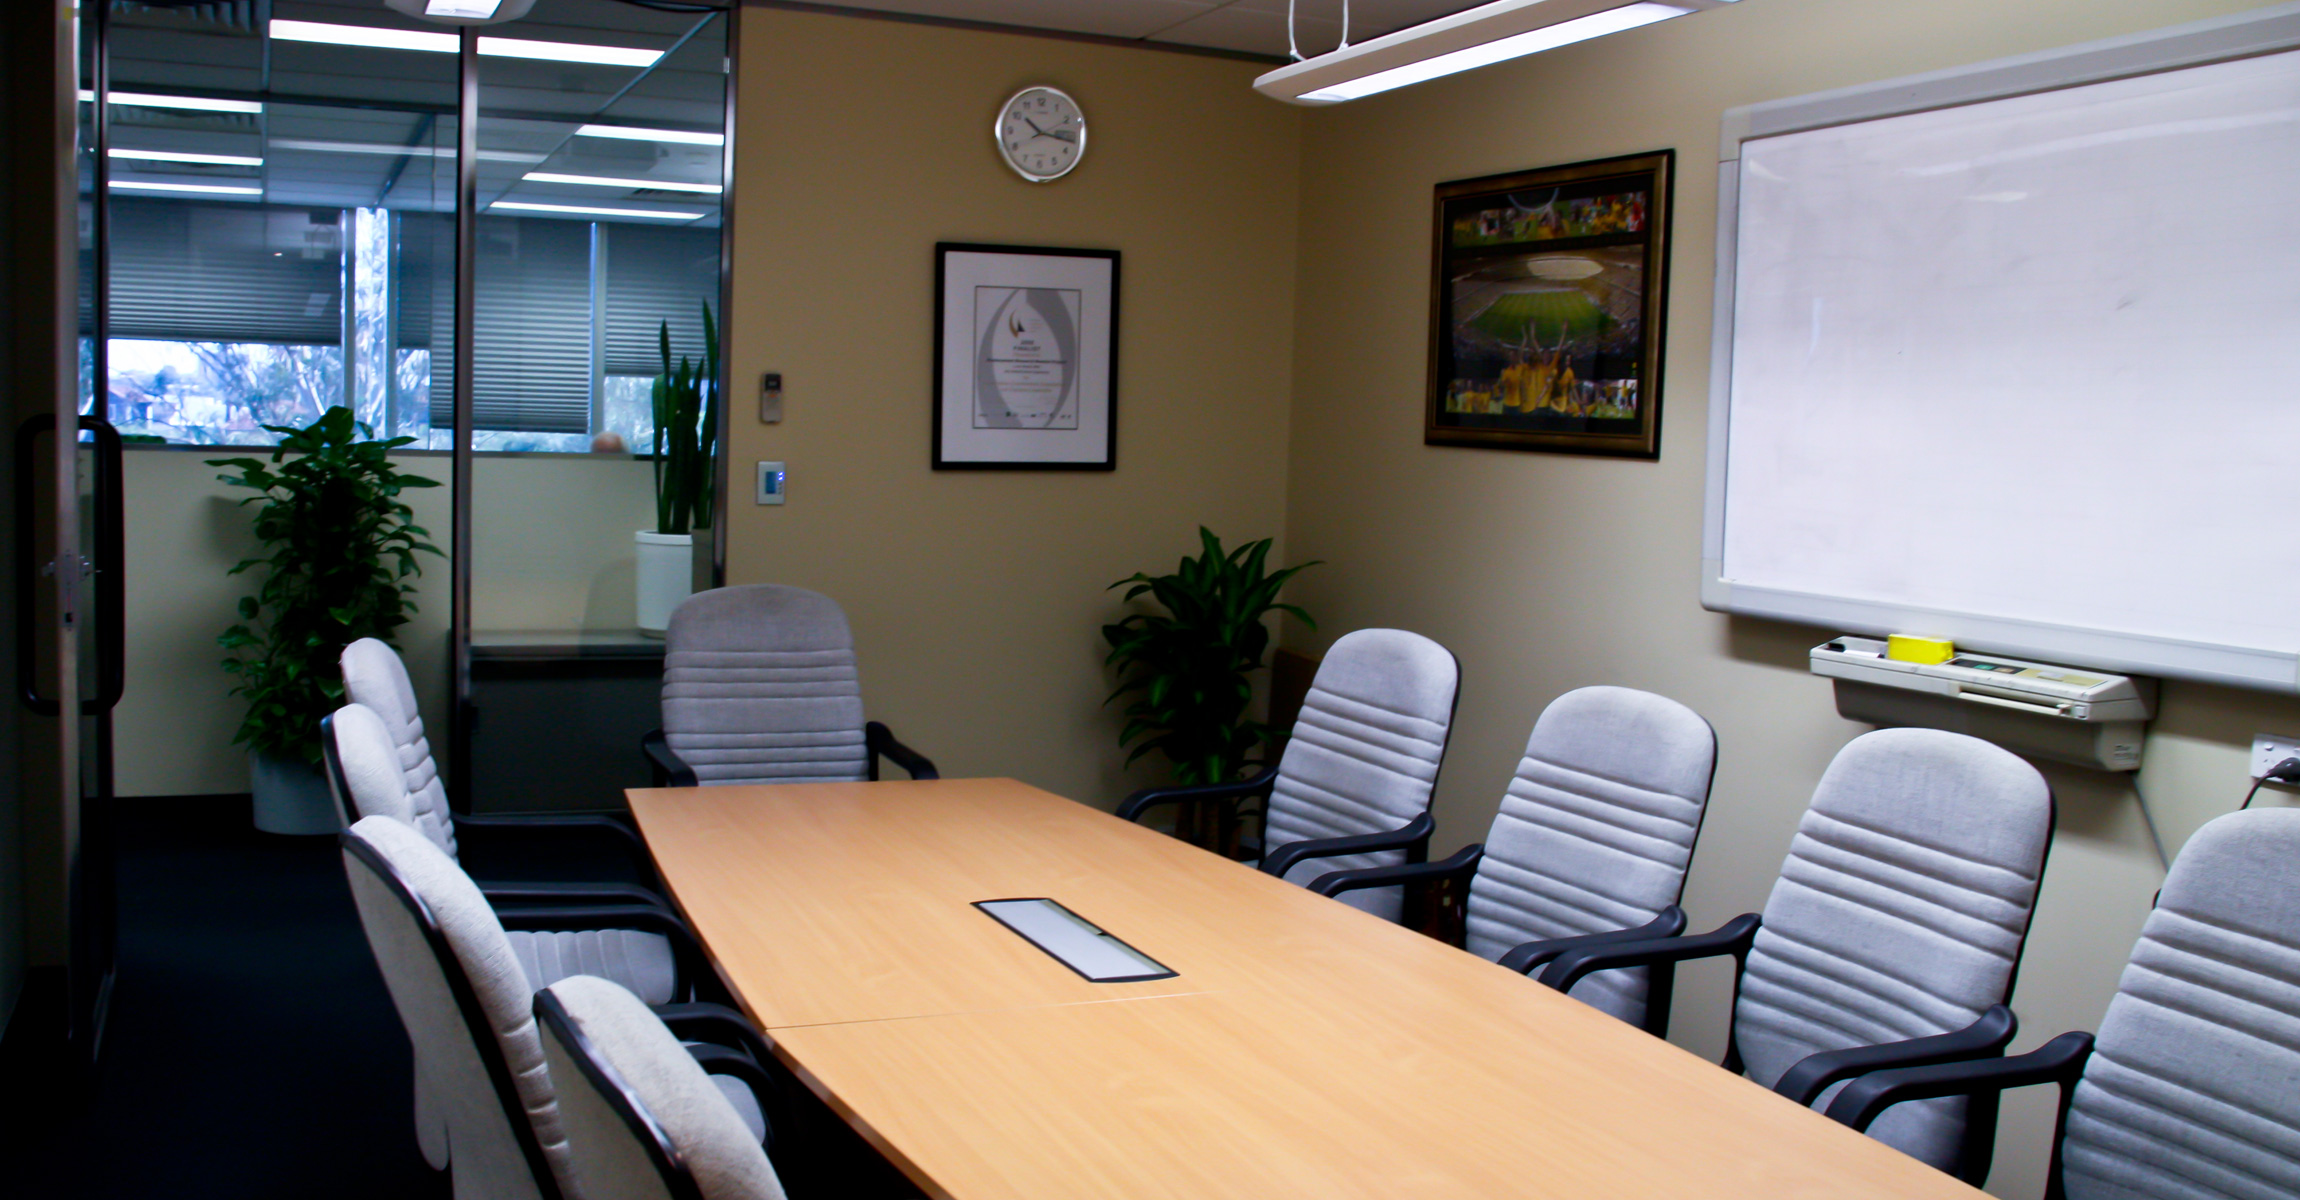 Downer edi office fitout ckj building services for Home office fitout